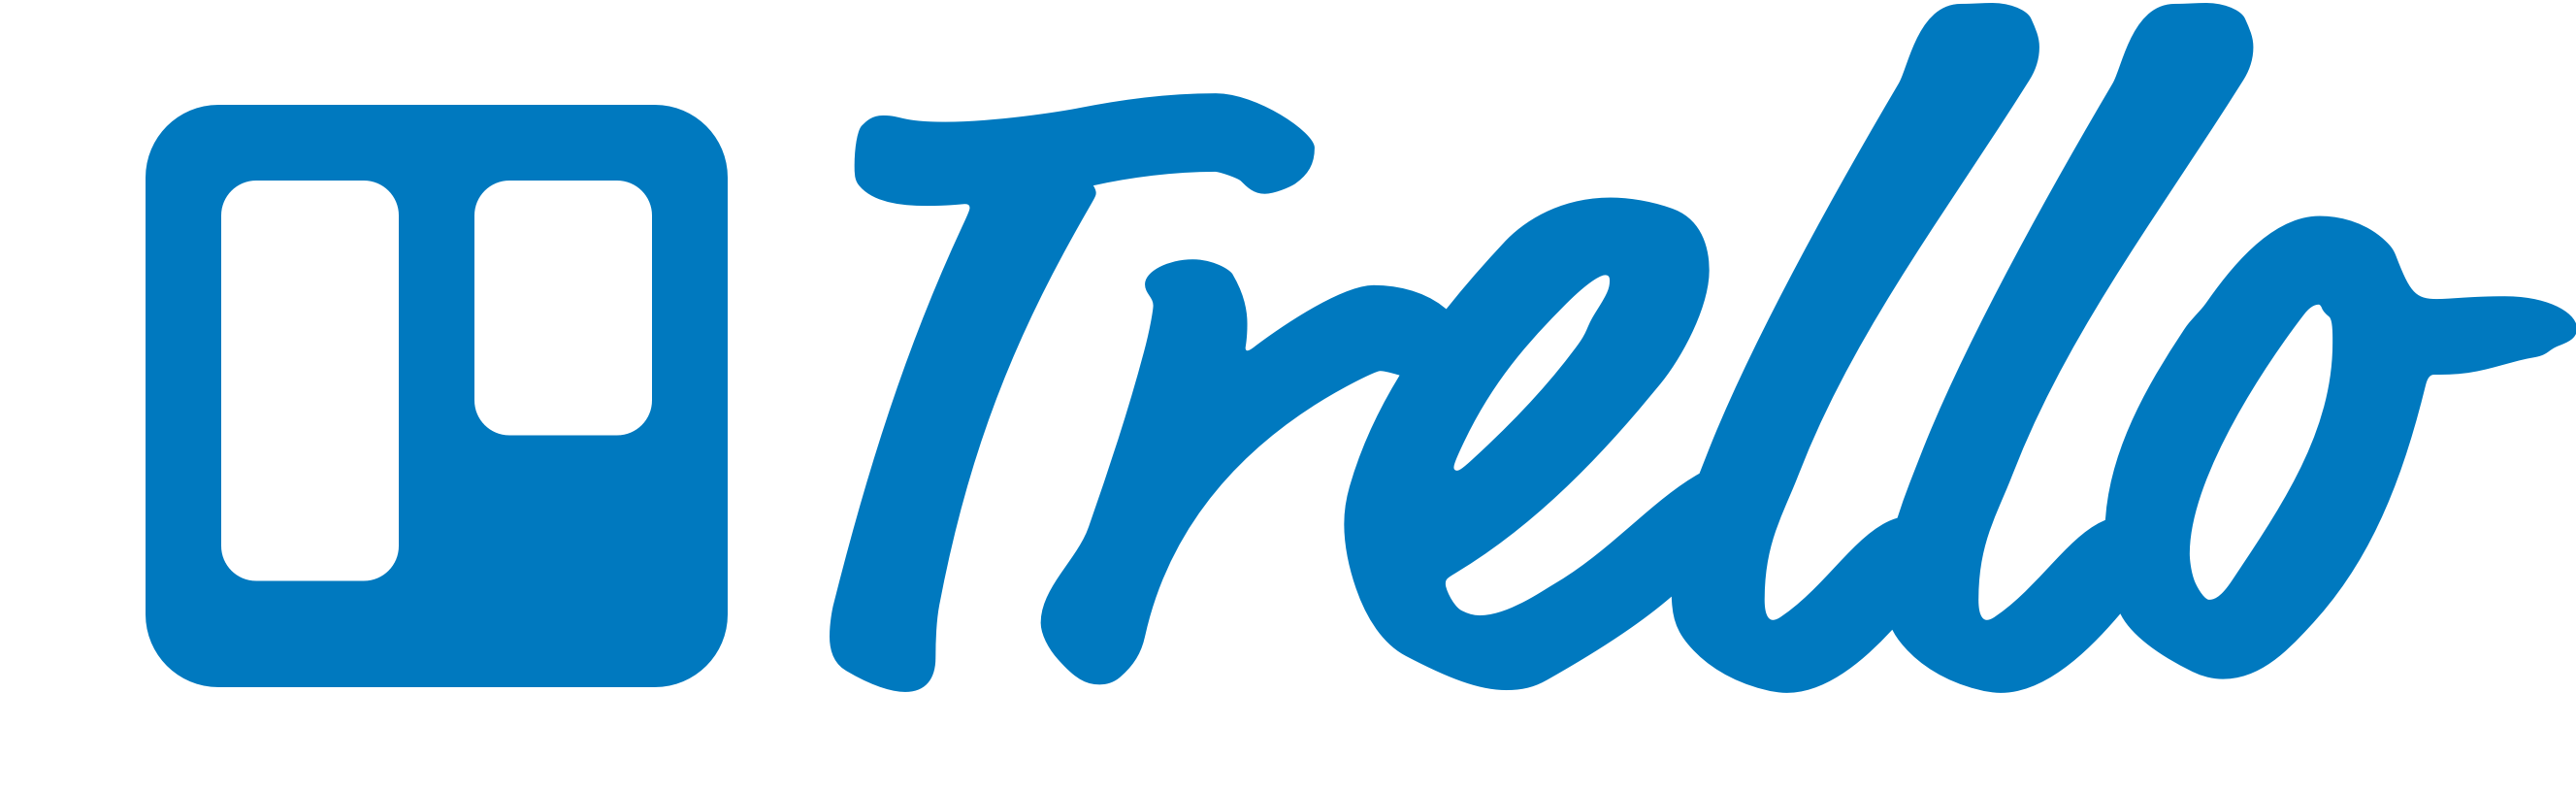 trello use node.js